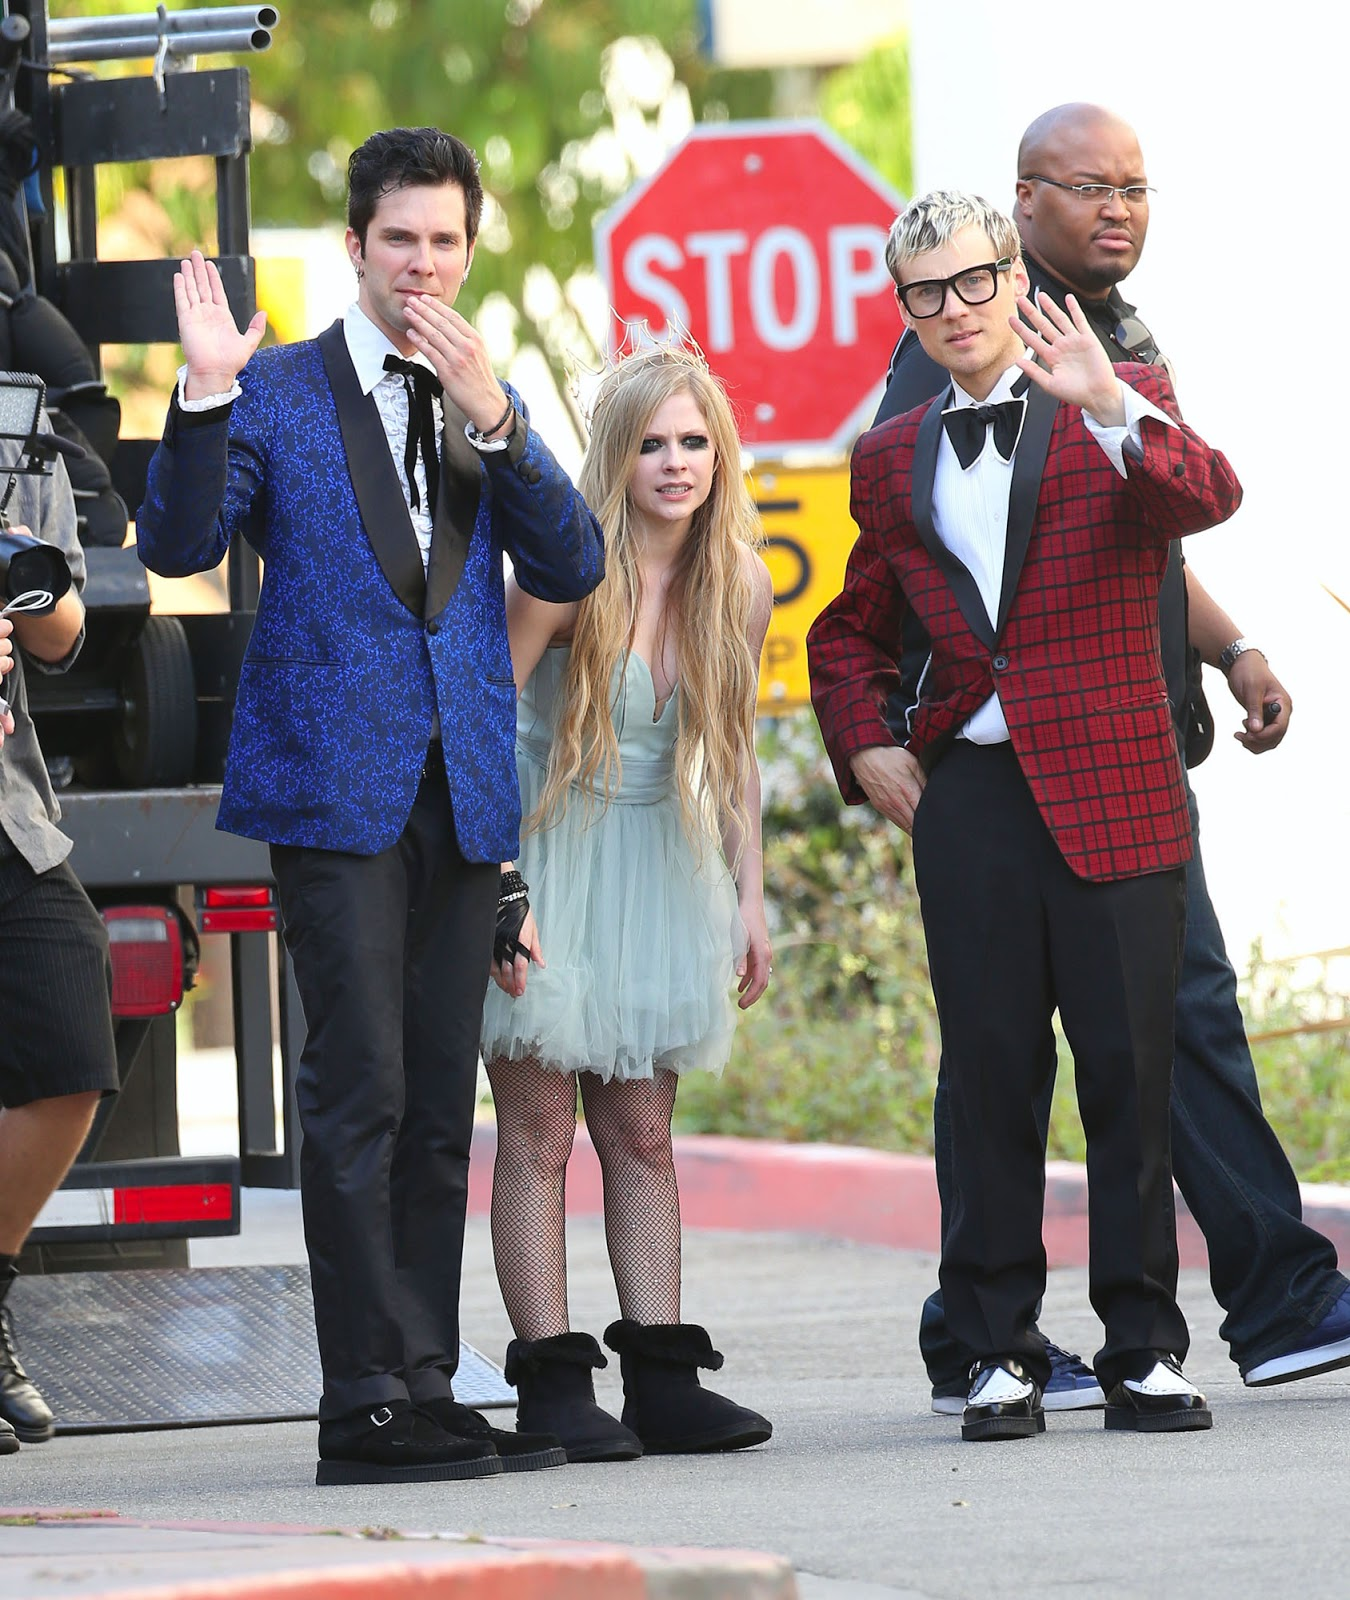 http://2.bp.blogspot.com/-rs52b3kNemw/UWL9DWM3nDI/AAAAAAAAGiA/uNv_6QjYZUg/s1600/EXPOSTAS.com+Avril+Lavigne+2013-04-07+-+On+Set+of+her+new+Video+HERE\'S+TO+NEVER+GROWING+UP+in+LA+(15).jpg